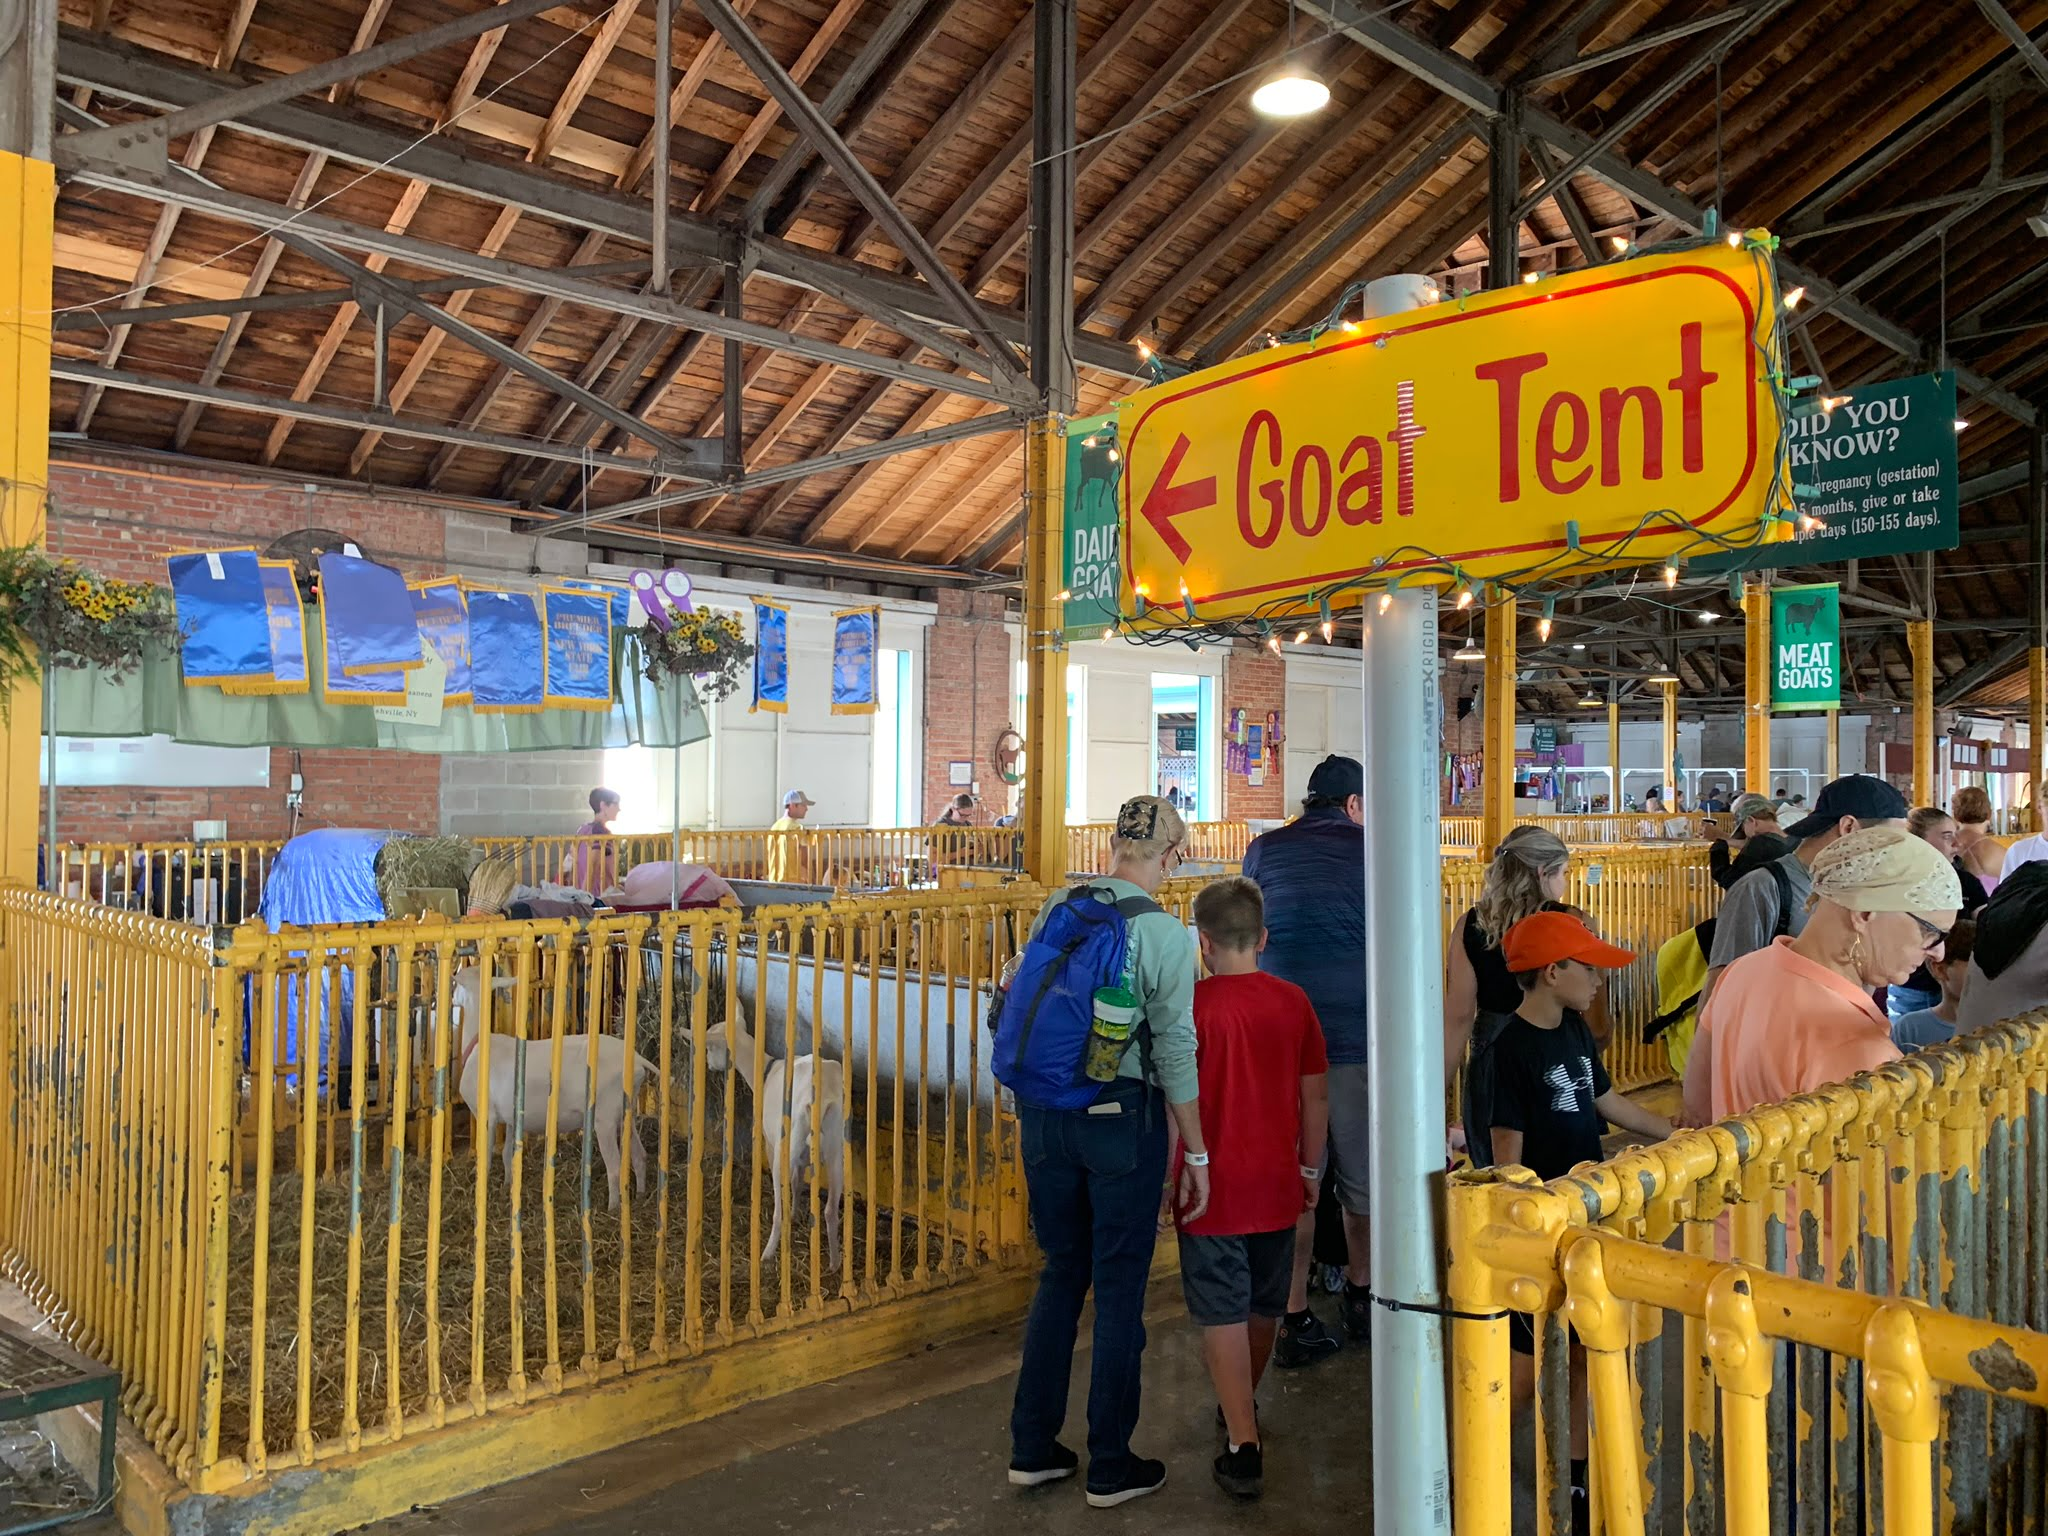 Goat Tent at NY State Fair